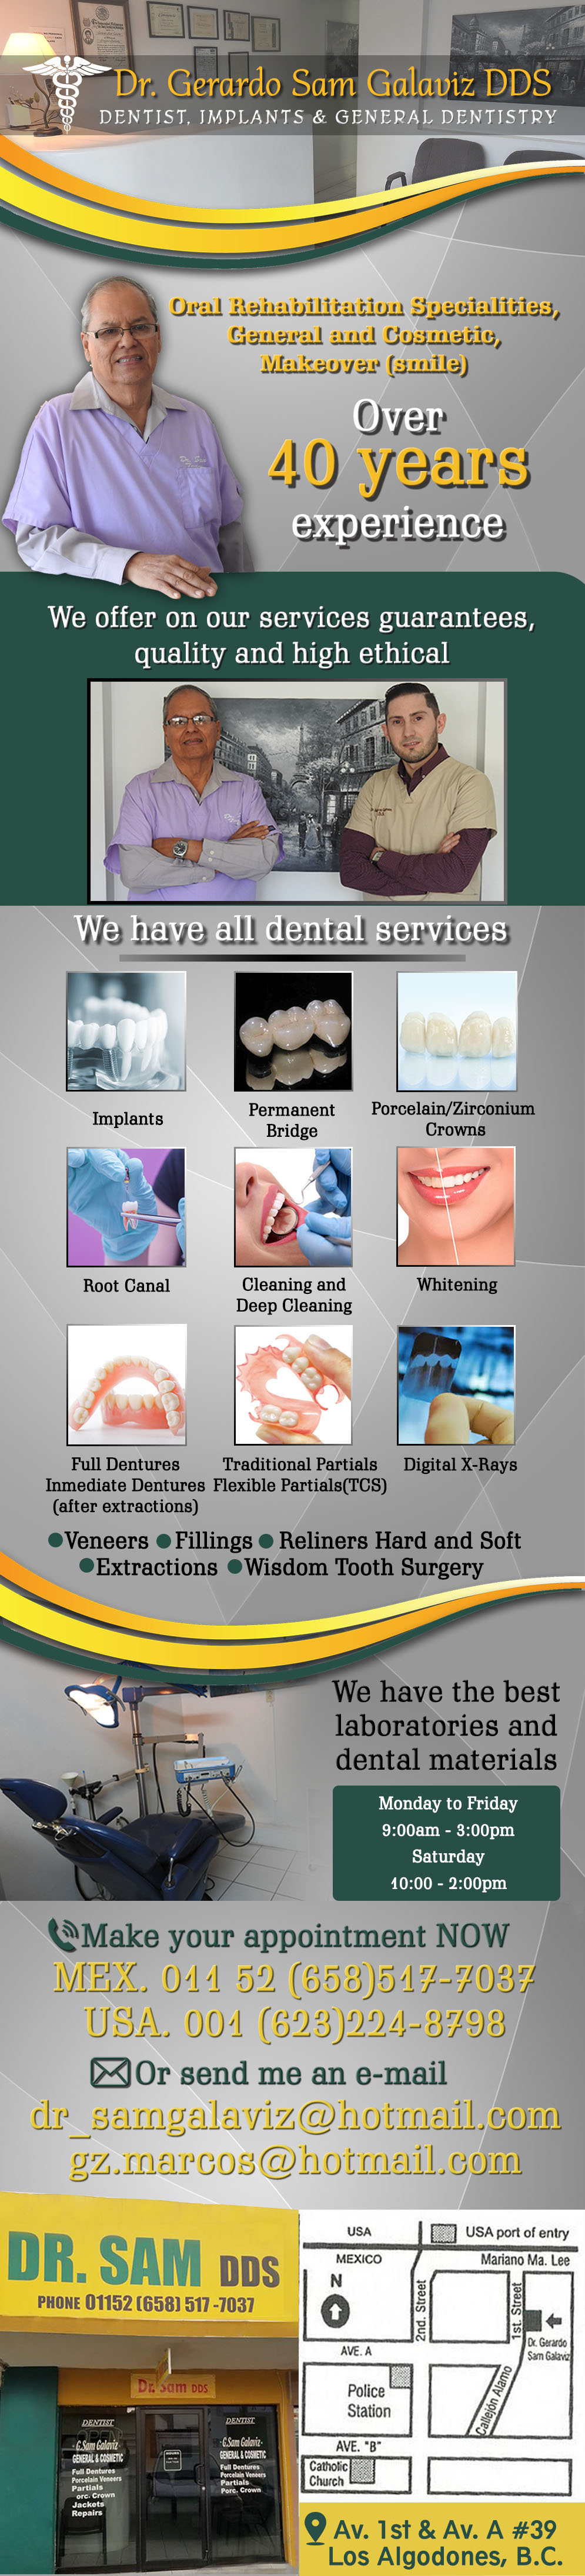 Dentist Gerardo Sam Galaviz D.D.S. in Algodones  in Algodones  We offer on our services guarantees, quality and high ethical. Implants, Porcelain Crowns, Zirconium Crowns, Veneers, Permanent Bridge, Full Dentures, Inmediate Dentures(After Extractions), Reliners Hard and Soft, Traditional Partials (TCS), Extractions, Wisdom Tooth Surgery, Root Canals, Fillings, Whitening, Cleaning and Deep Cleaning, Digital X-Rays.                 full denture porcelain  flexible partial traditional  crowns venners bridges root canal x-rays reline hard or sutt extractions whitening cleaning deep filling implants inmediate plate post traditionals dentist dentistry dds dr sam galaviz los algodones dentista